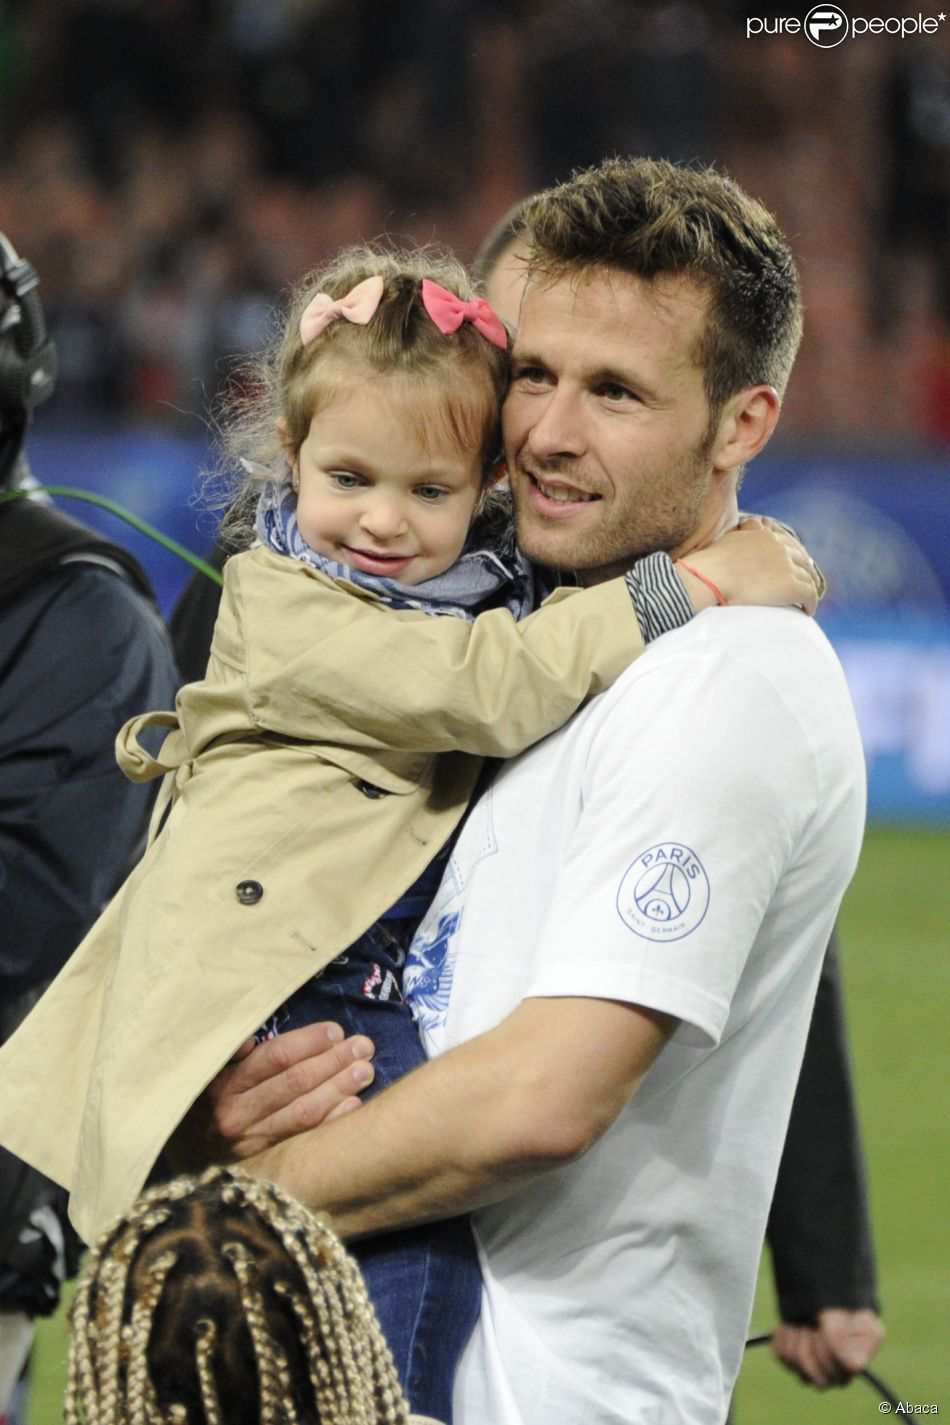 Photo of Yohan Cabaye & his  Daughter  Myla Cabaye